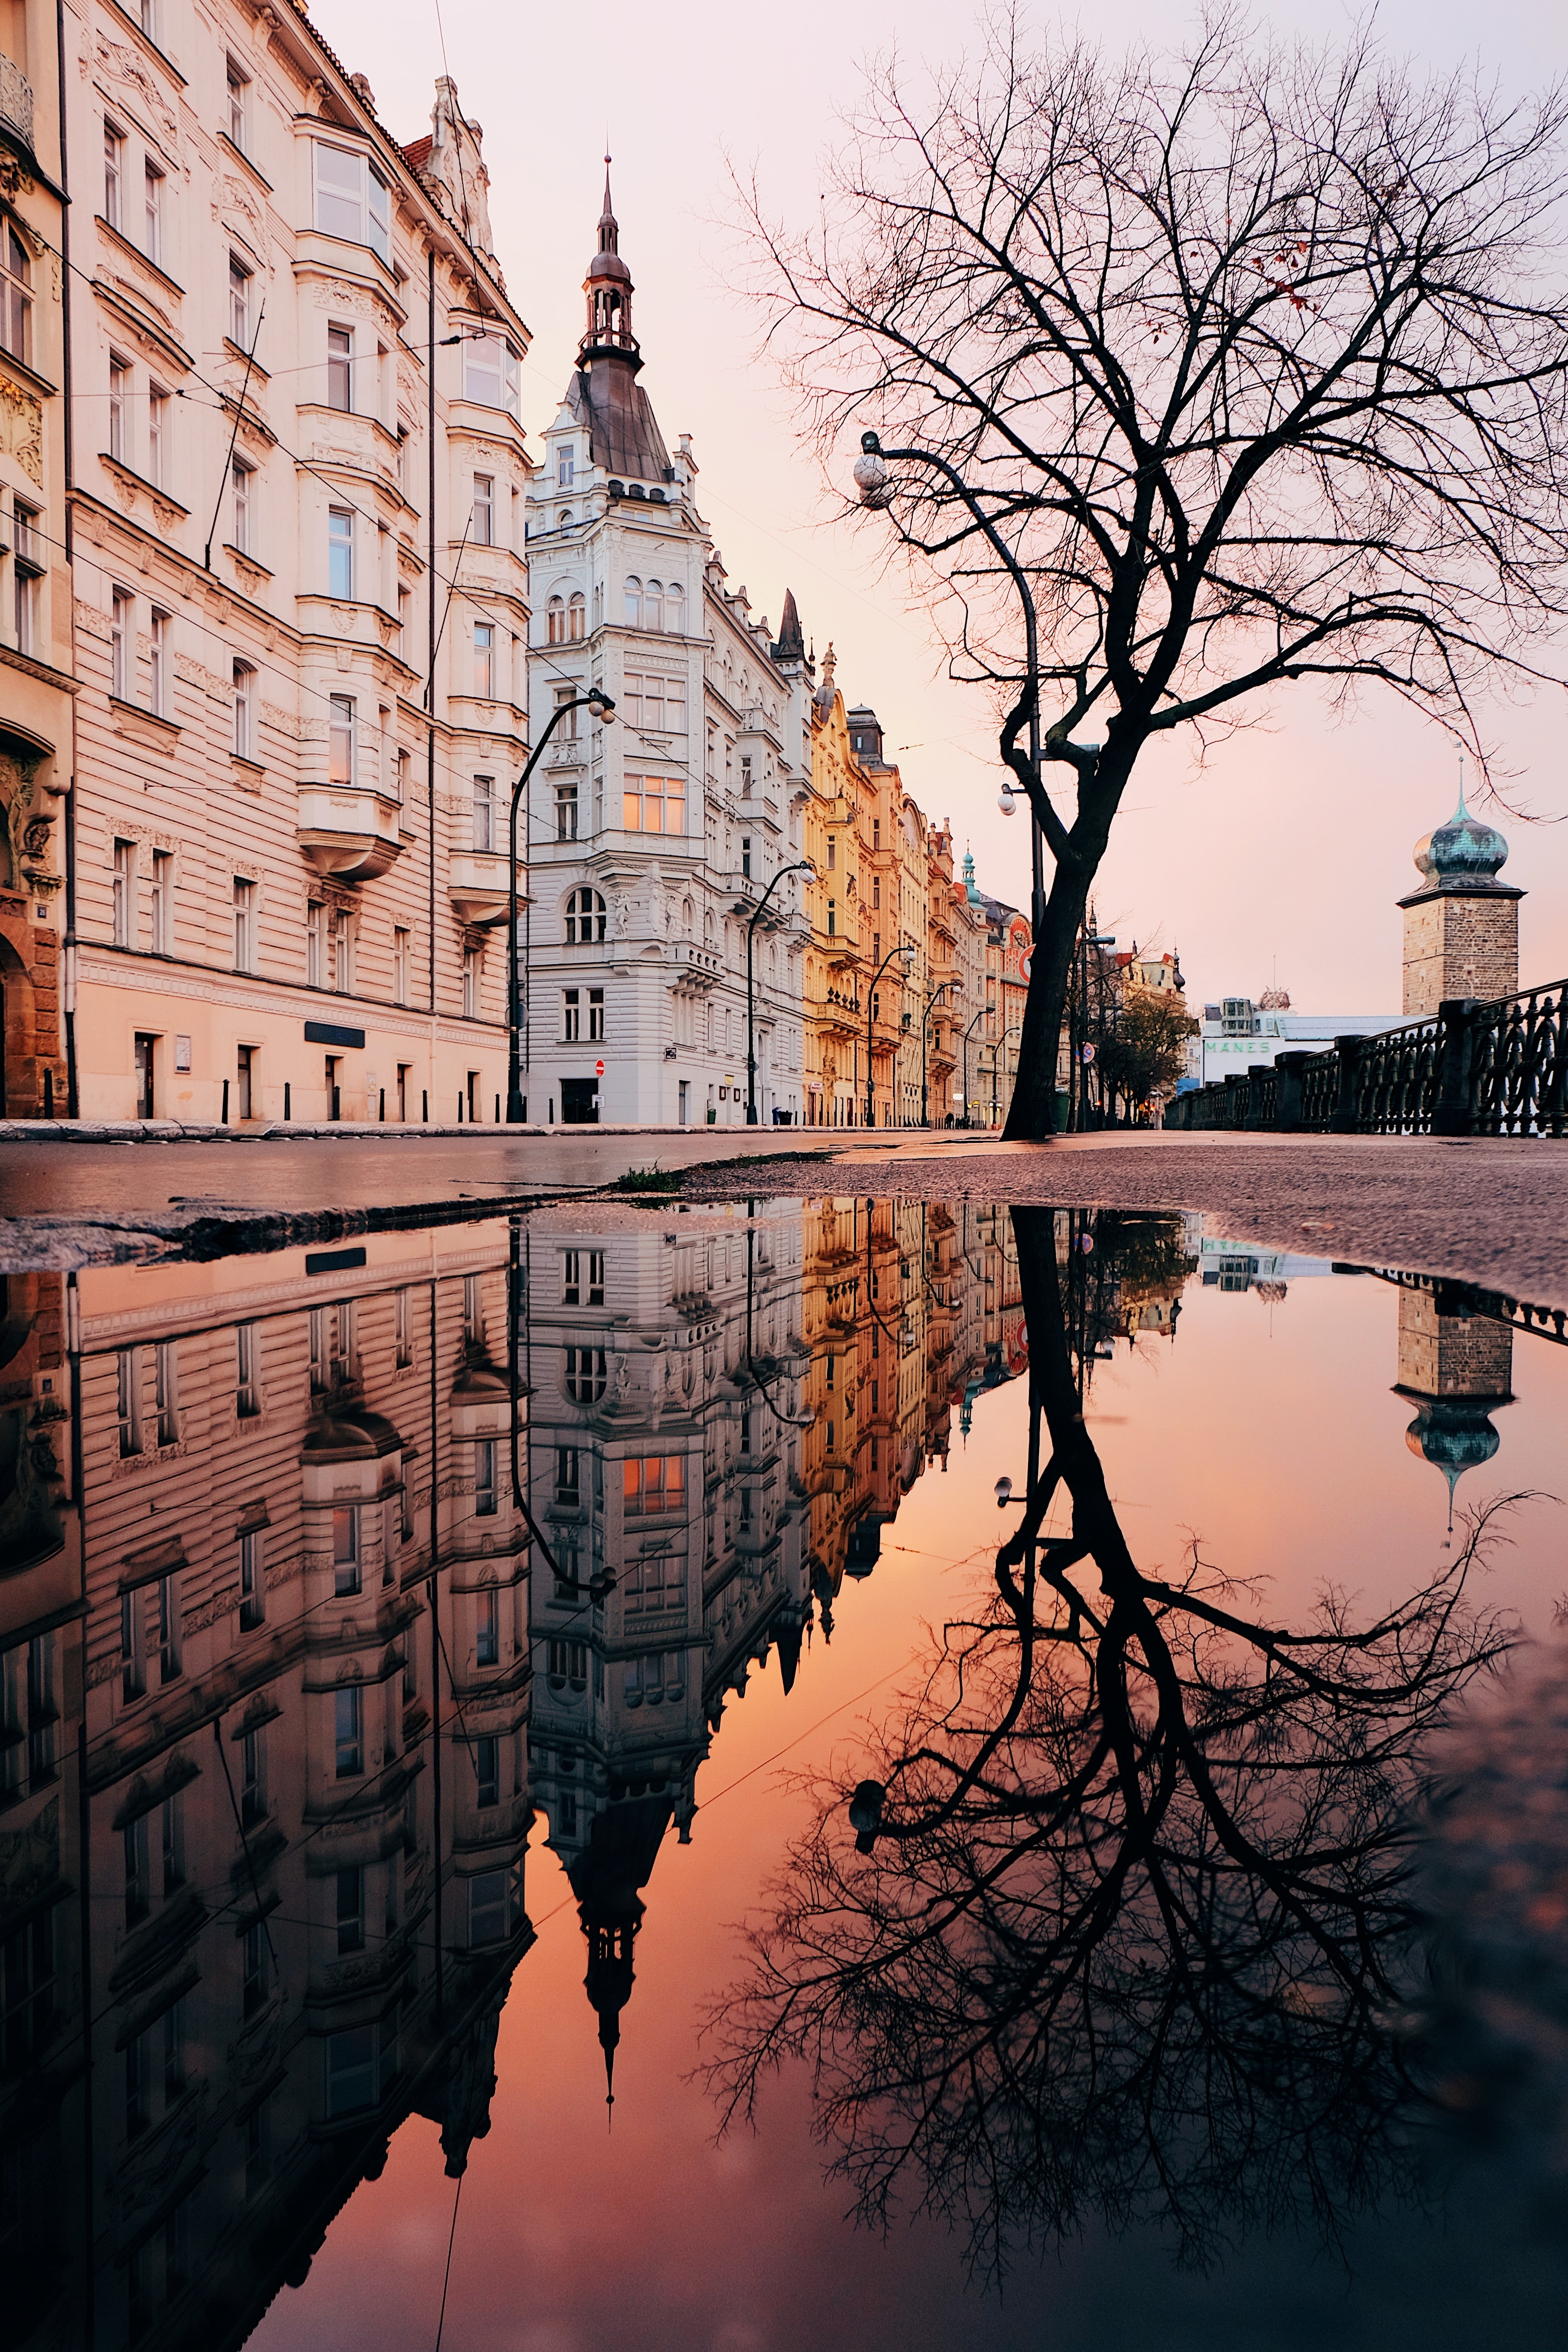 puddle on road beside concrete buildings